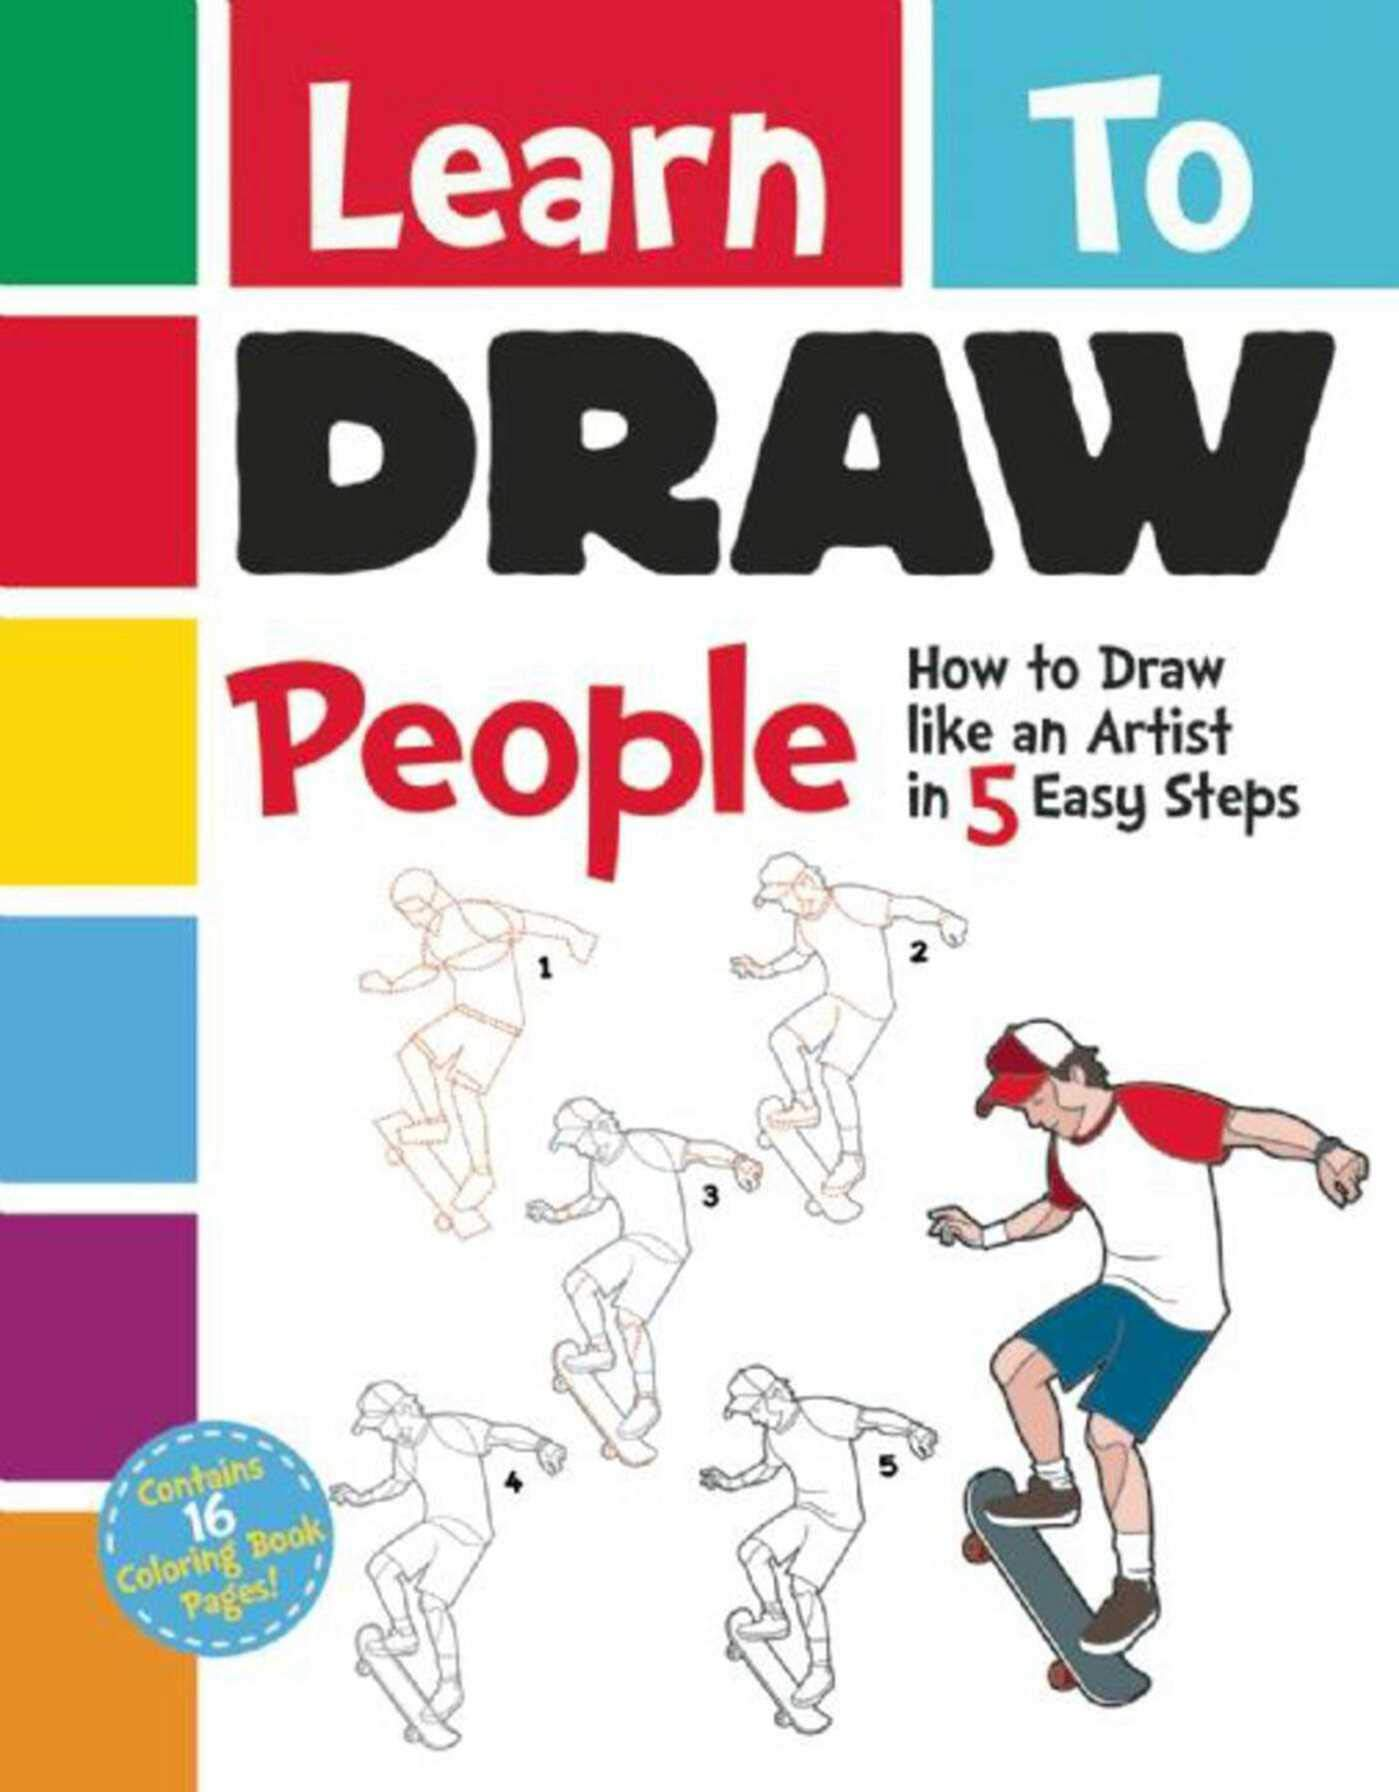 Learn to draw people how to draw like an artist in 5 easy steps paperback november 15 2016